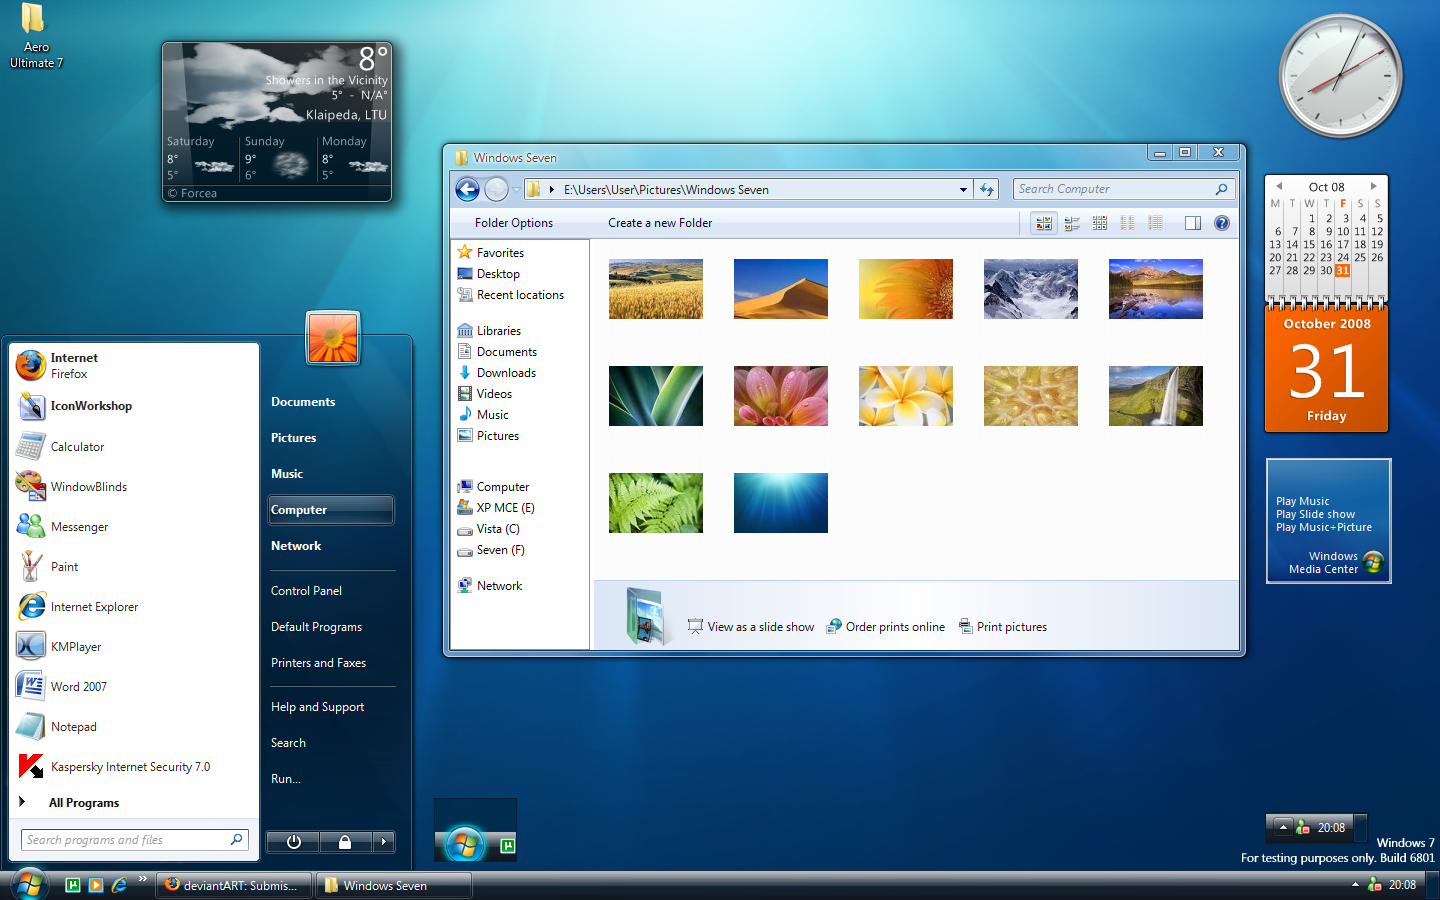 Windows 7 Ultimate Free Download ISO 32 and 64 Bit | Get Into Pc